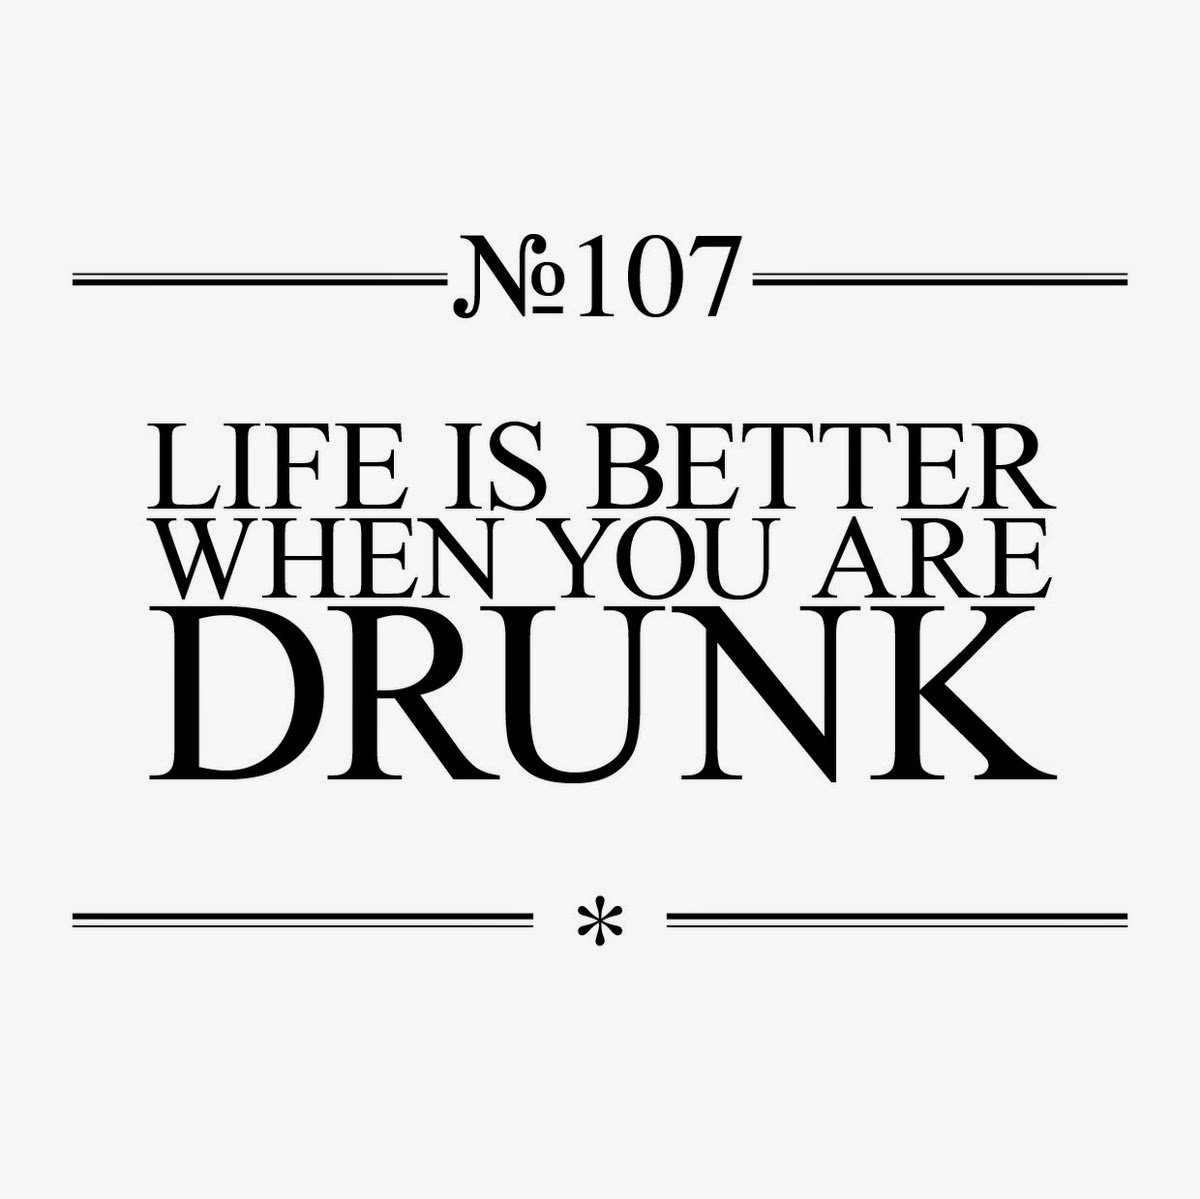 Alcoholic Quotes: Quotes About Drinking Wine Funny. QuotesGram